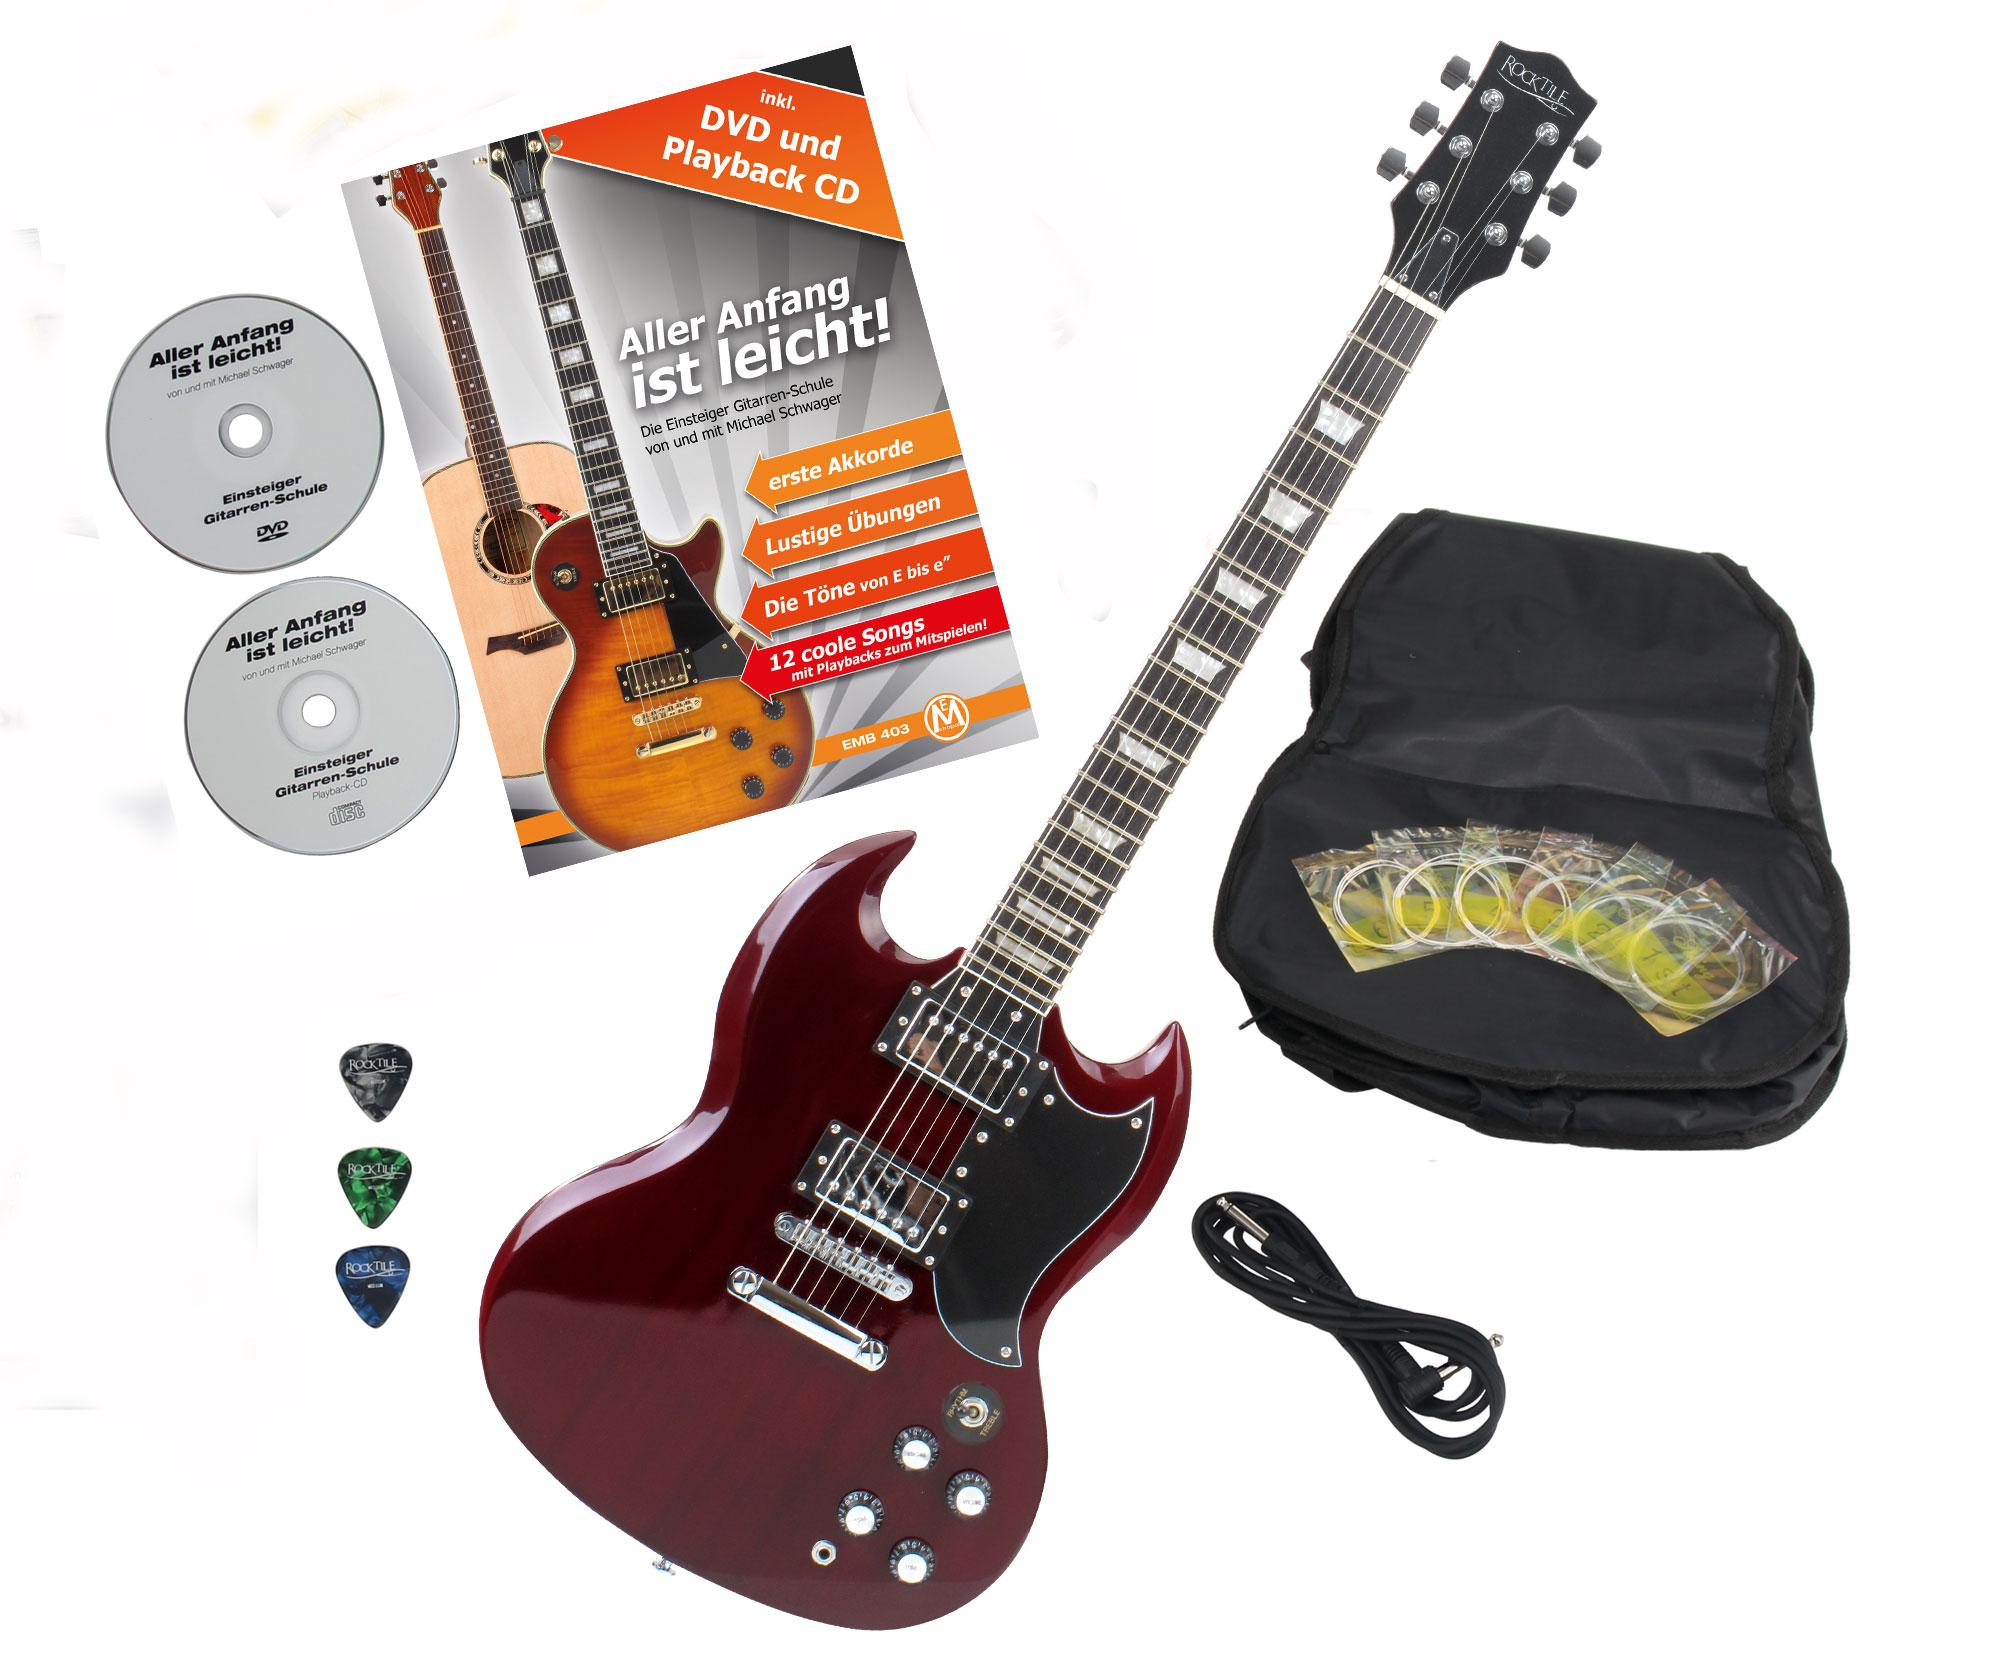 rocktile pro s r electric guitar heritage cherry with accessories. Black Bedroom Furniture Sets. Home Design Ideas